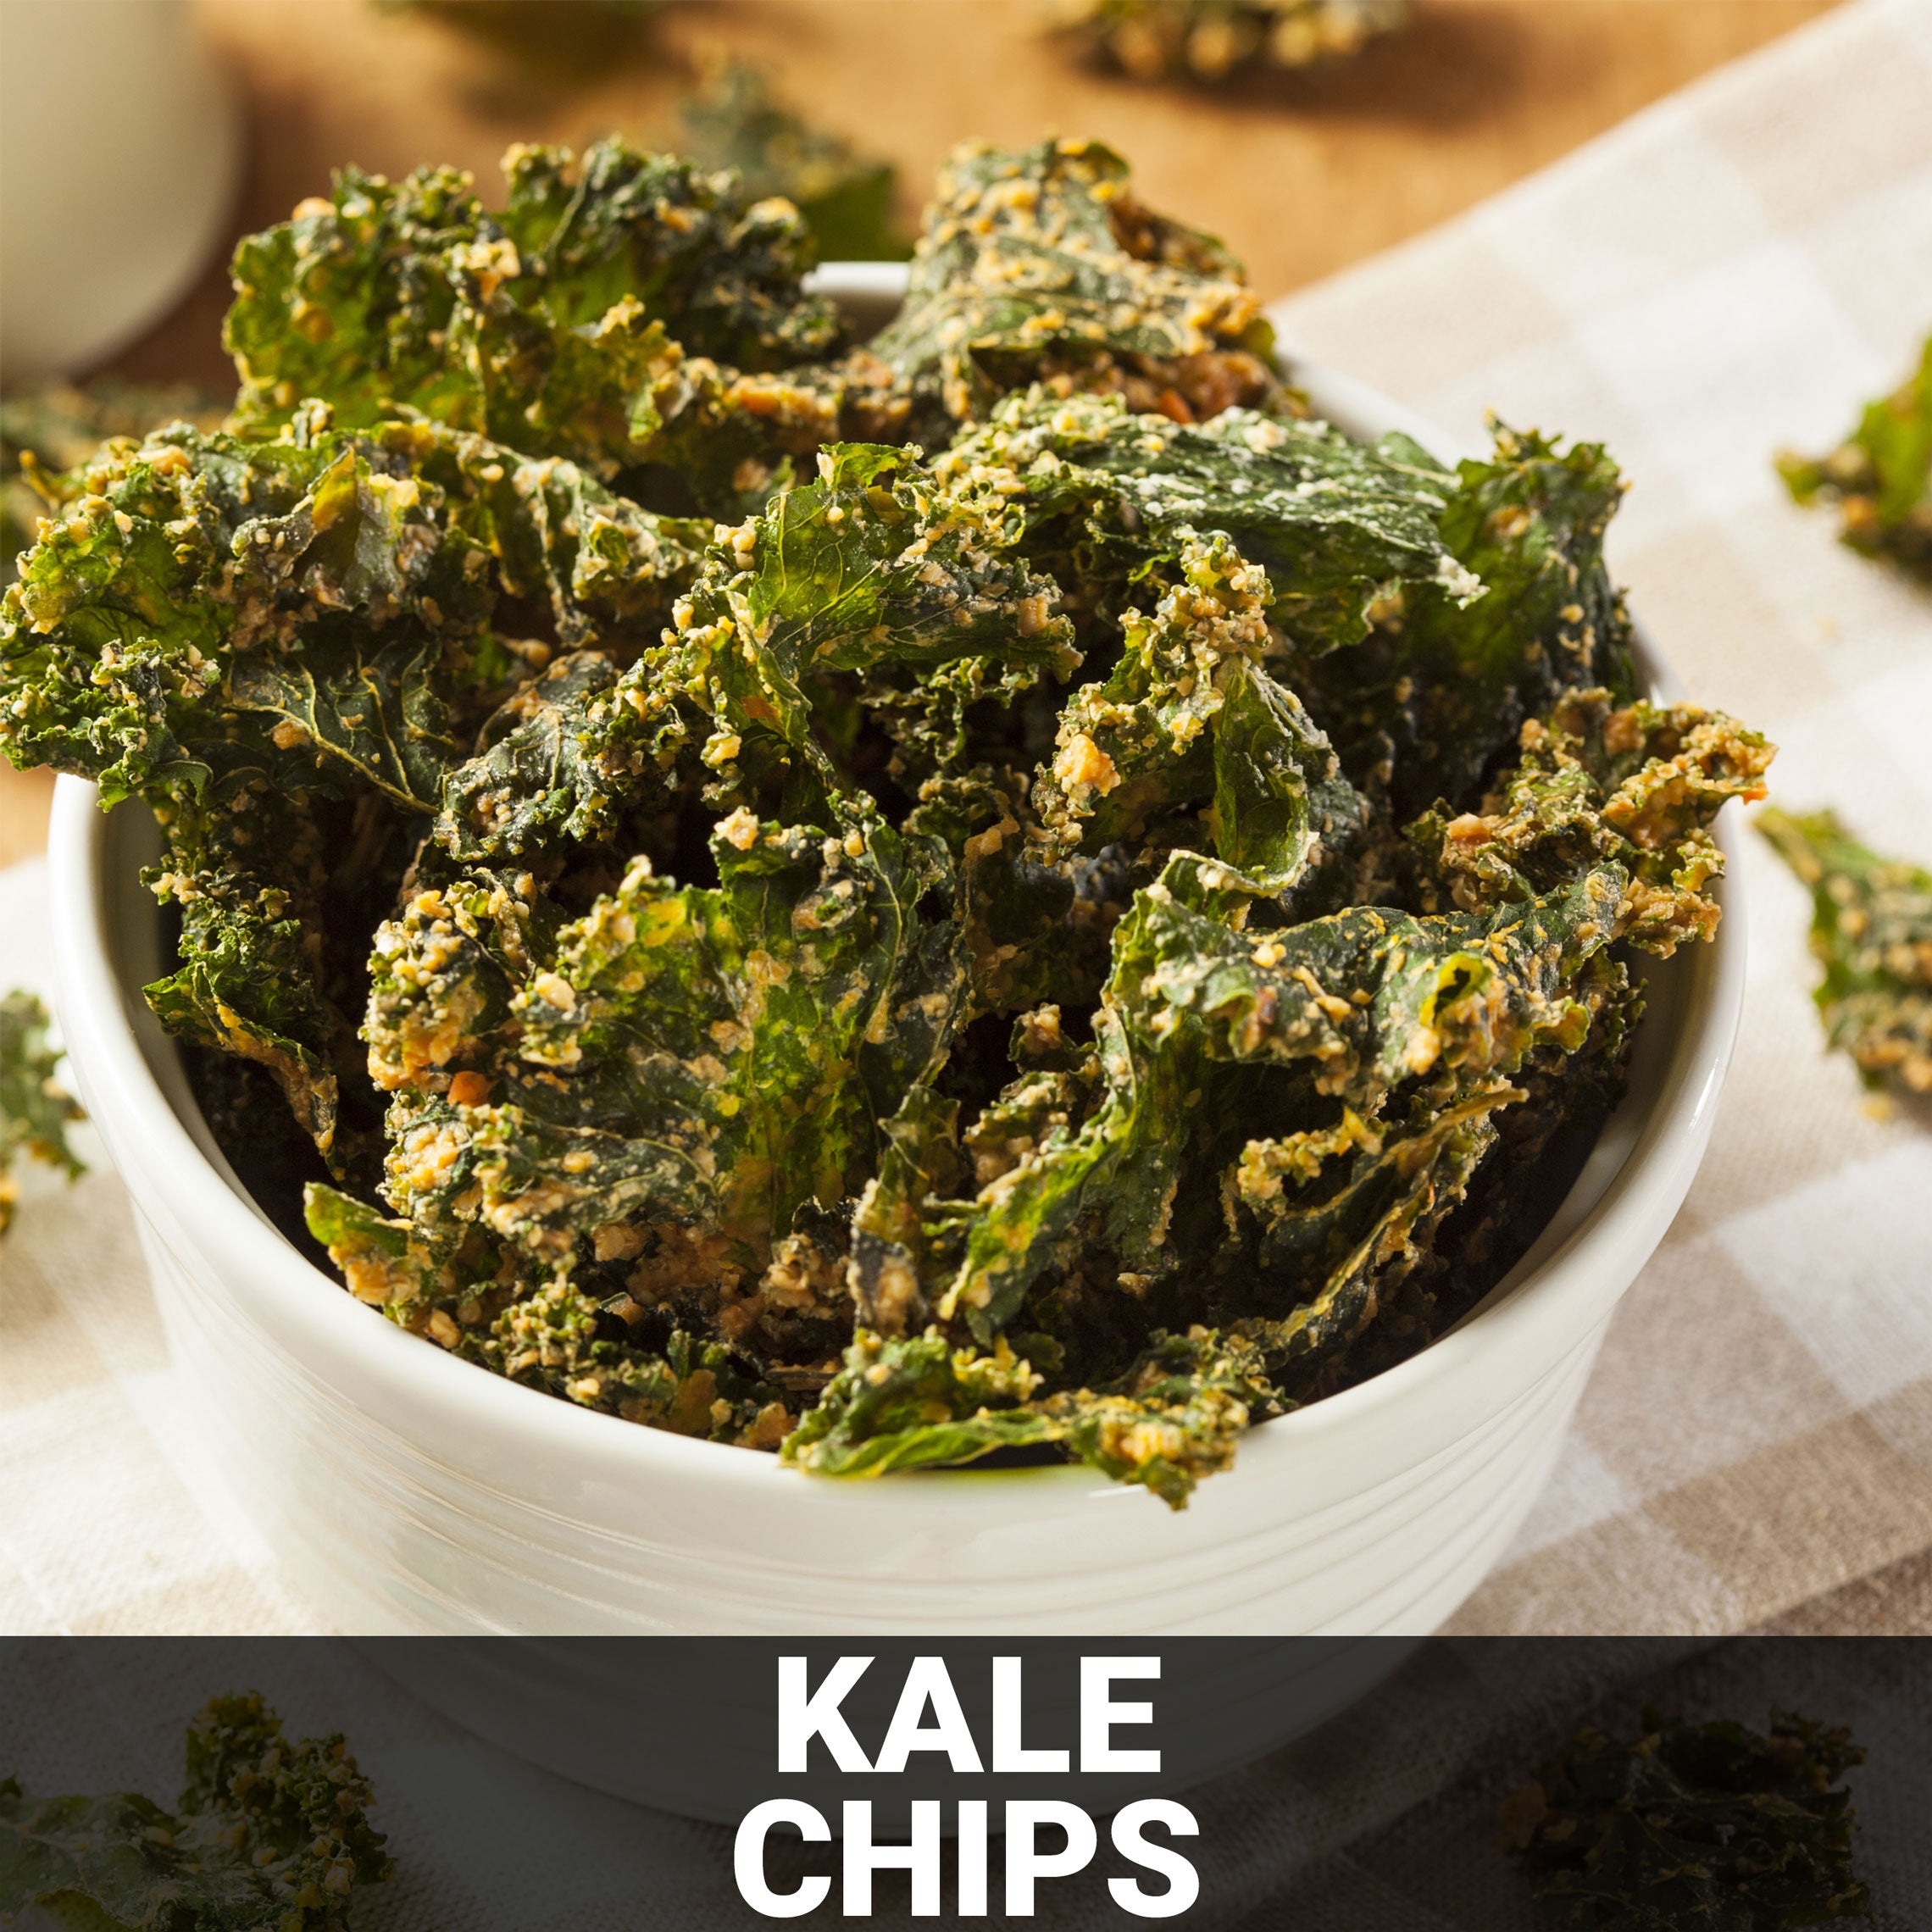 Kale Chips Recipe - Foods Alive